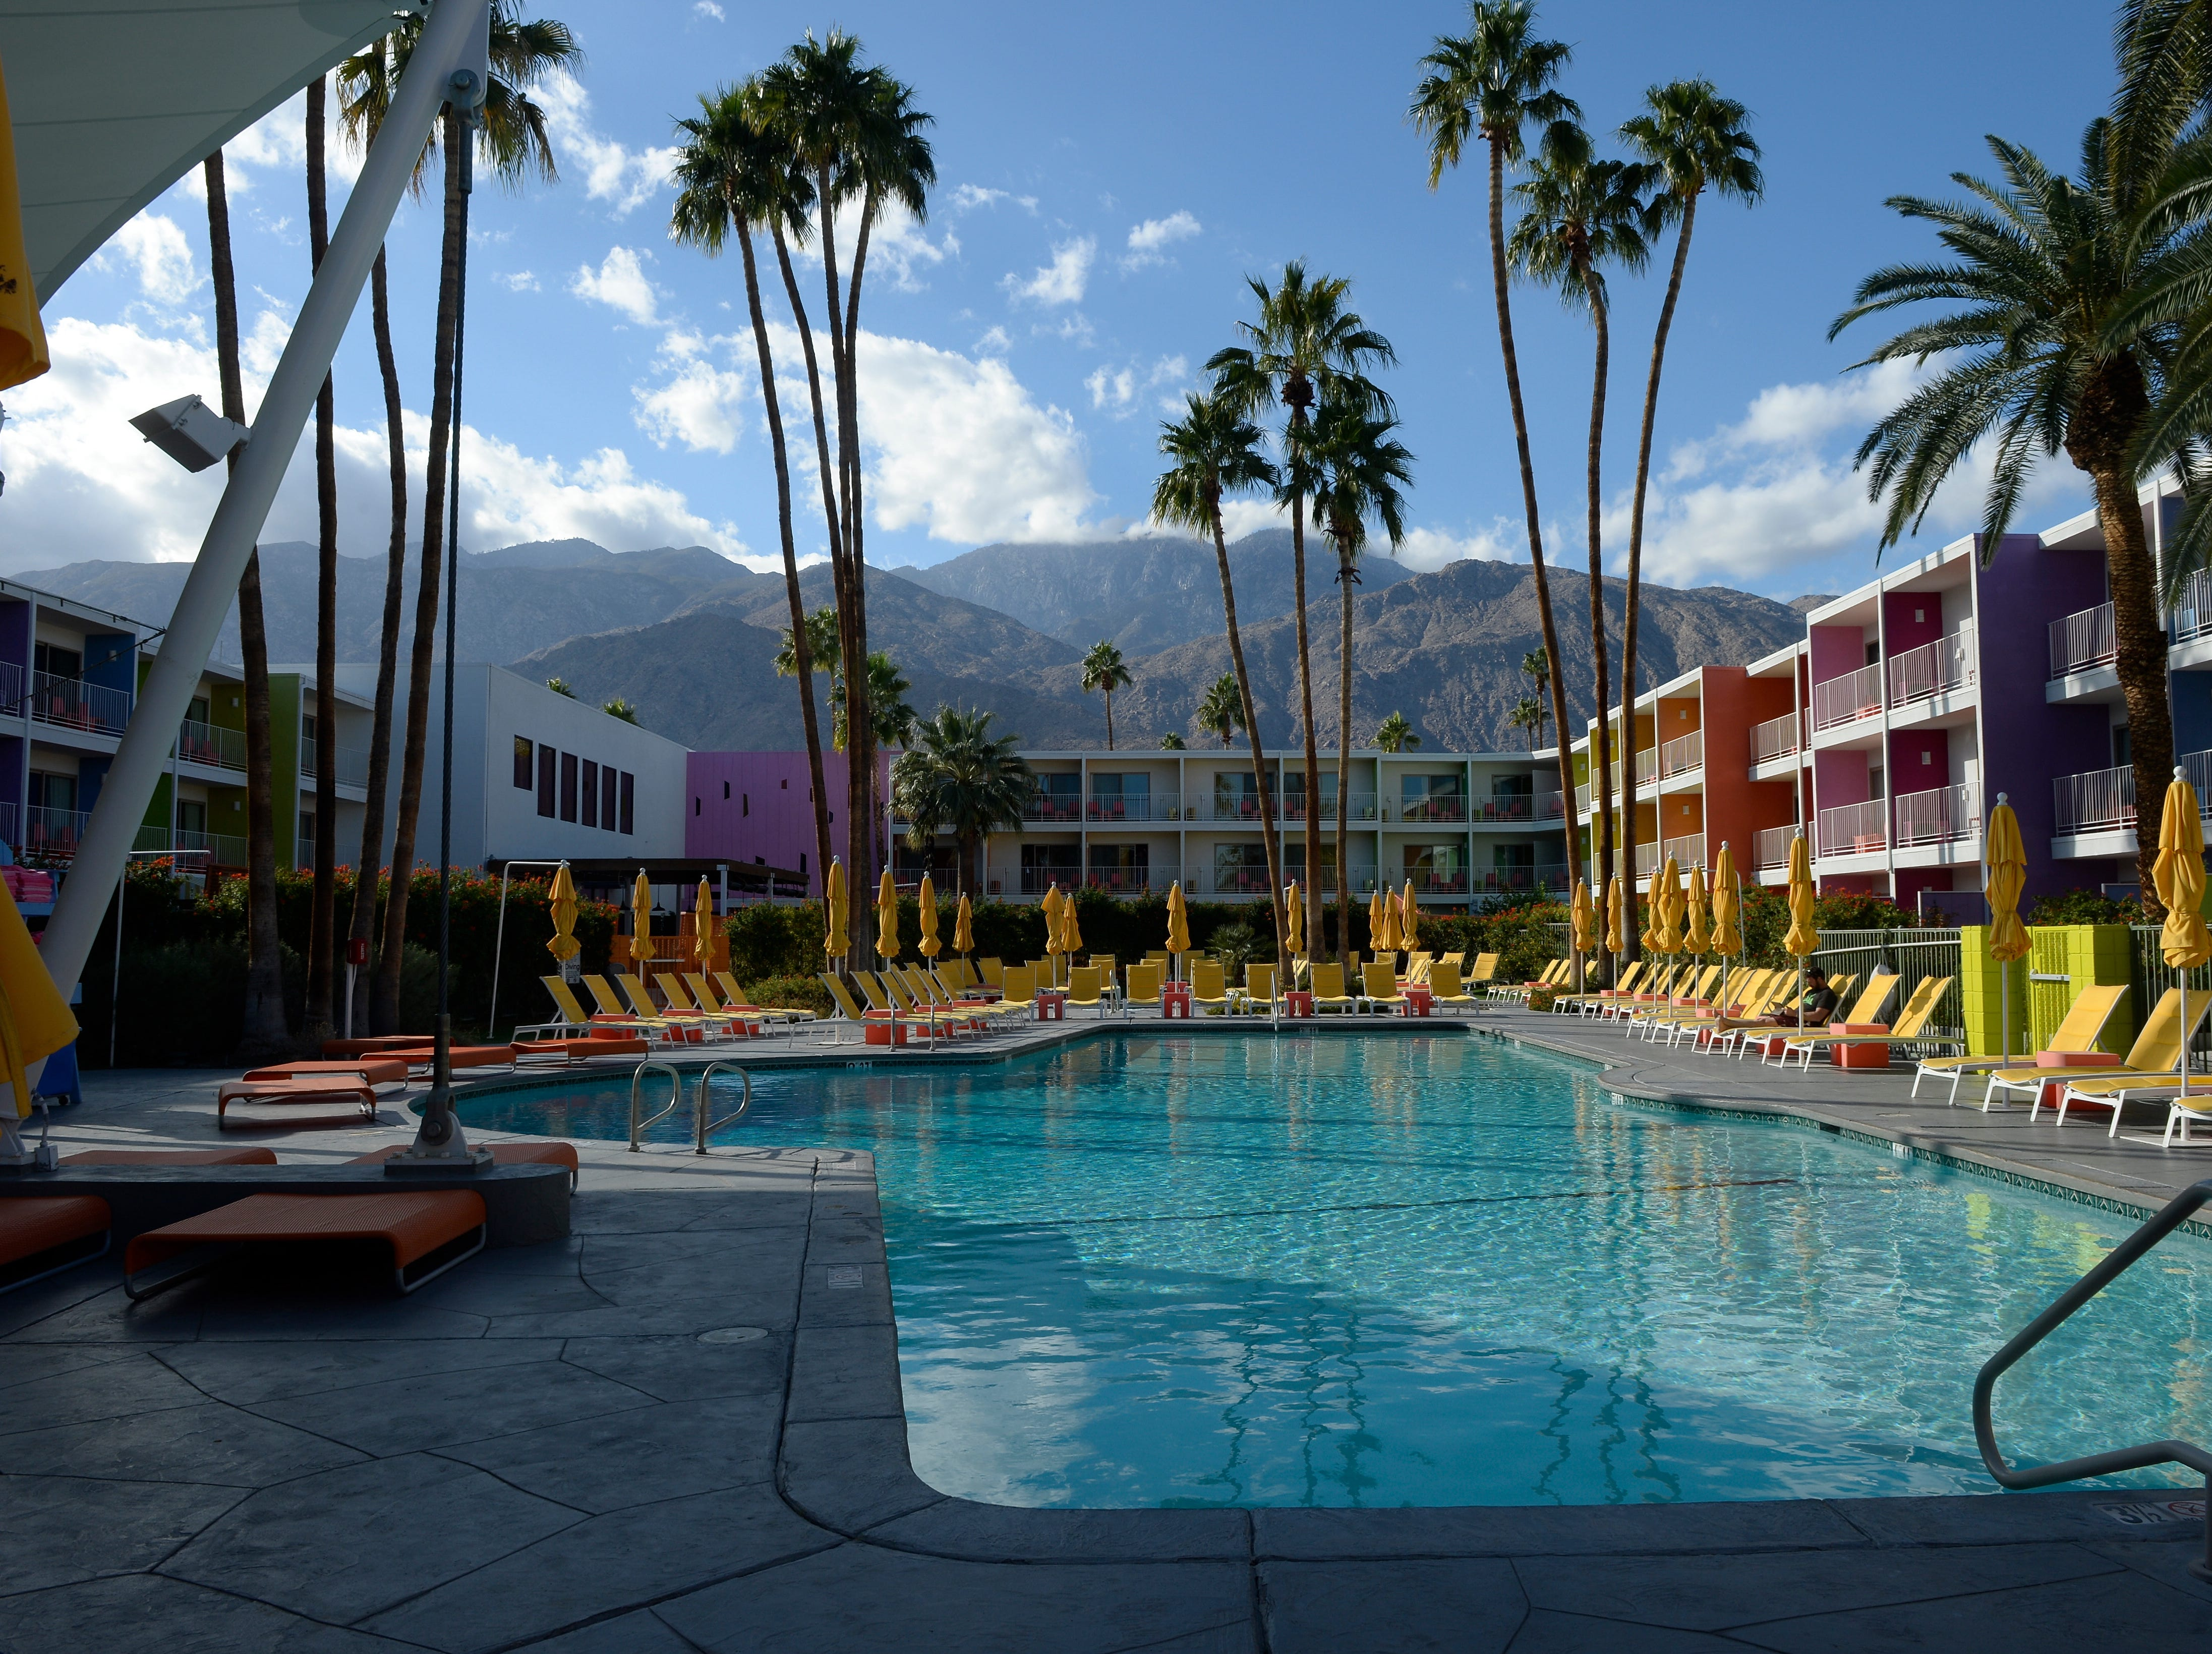 Palm Springs, California, is one of Travelzoo's top picks for affordable places to visit in the USA in January, with one-way fares from Chicago as low as $59. This is the retro-style Saguaro Hotel.